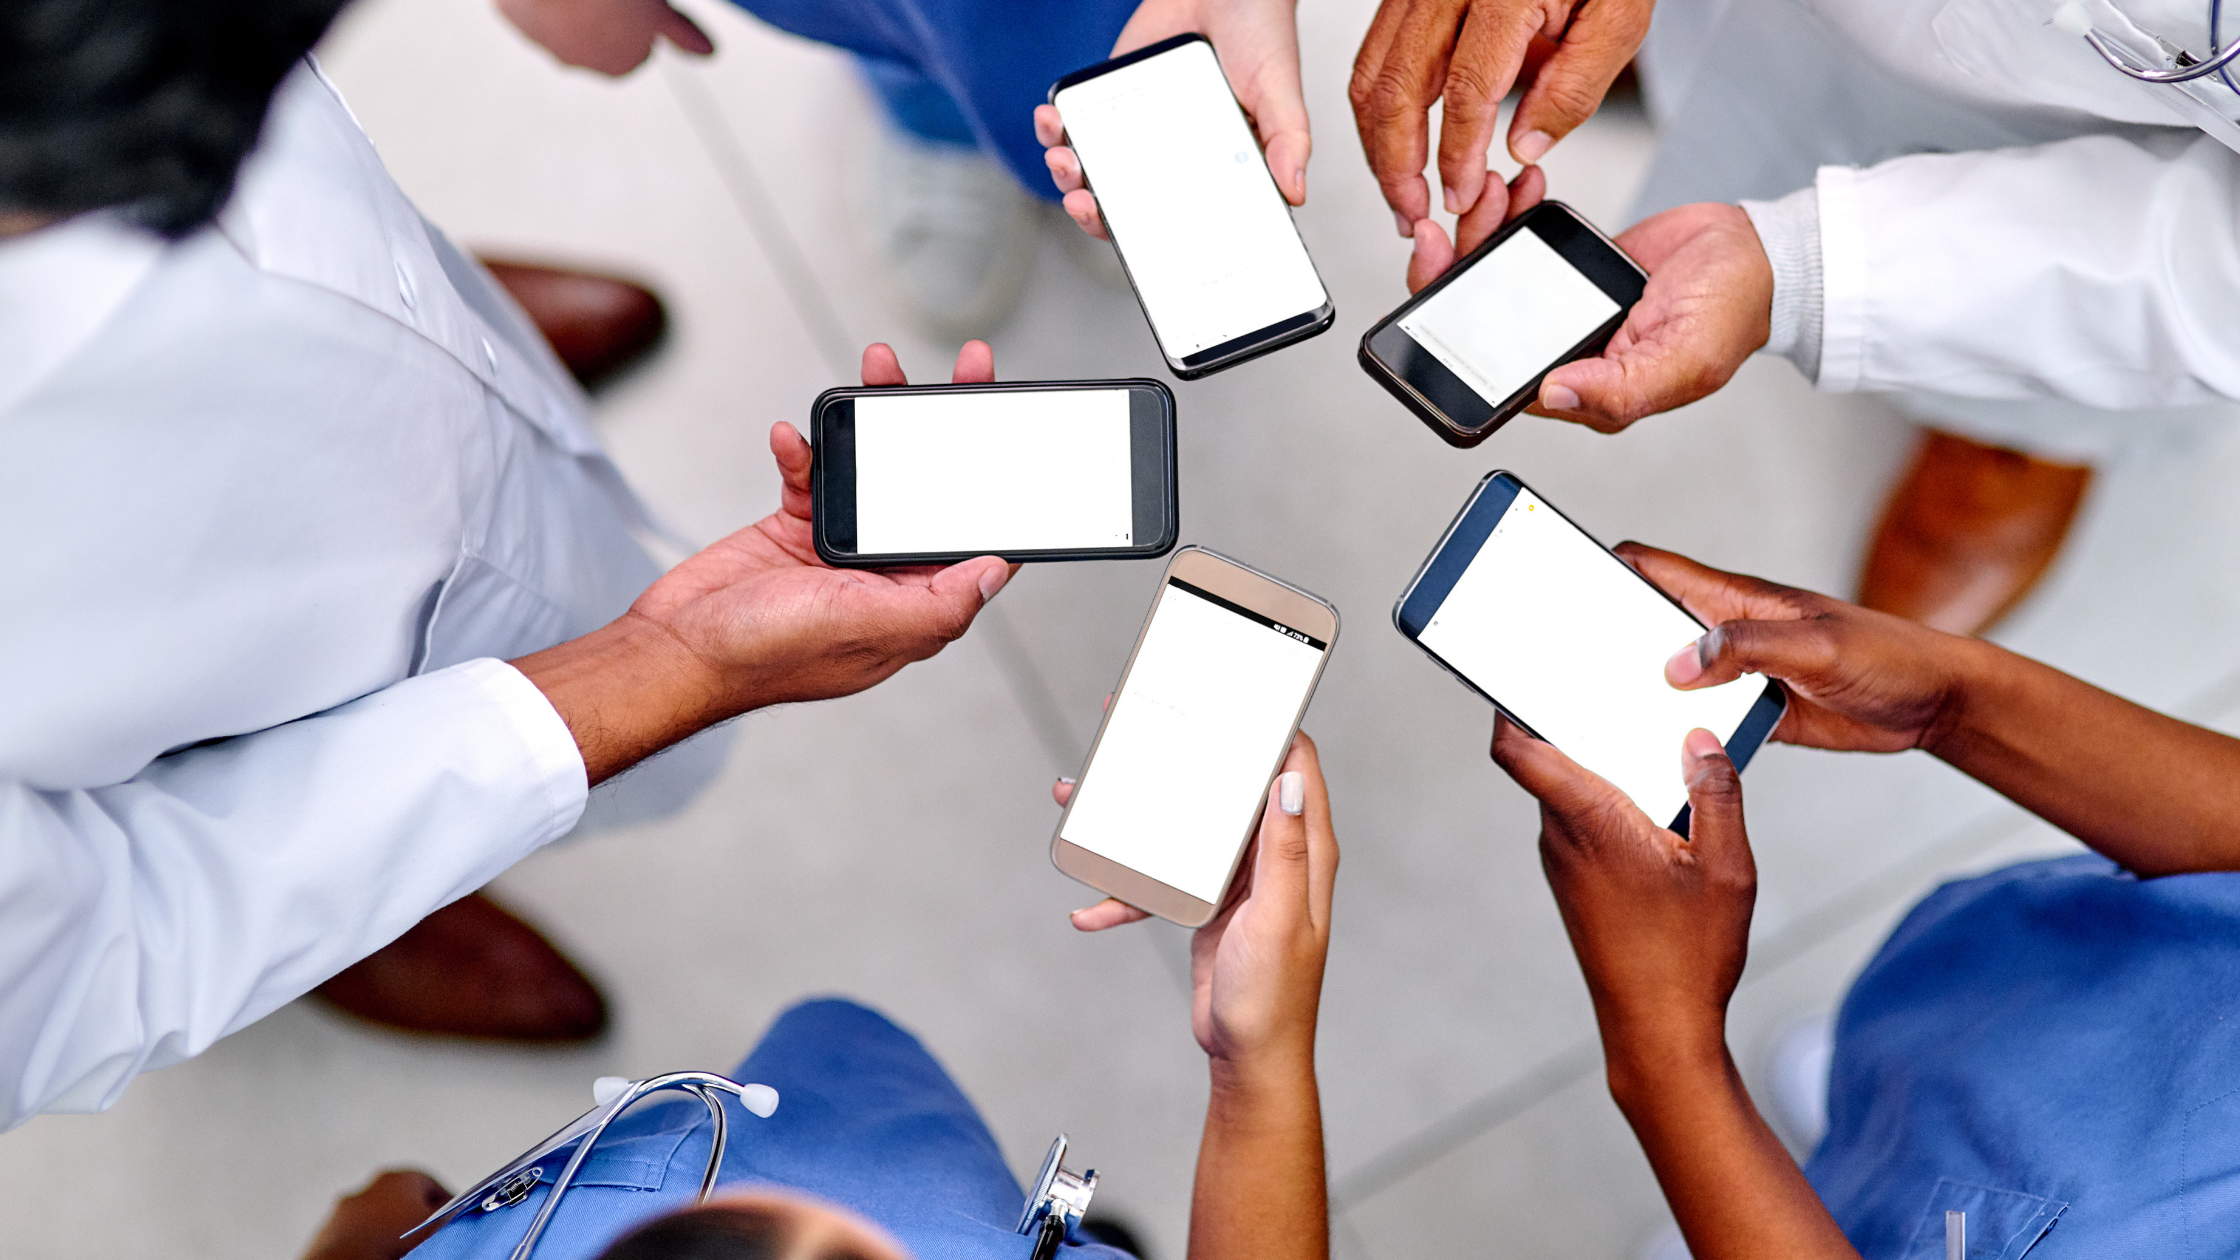 Mobile consulting – When Do You Need it?